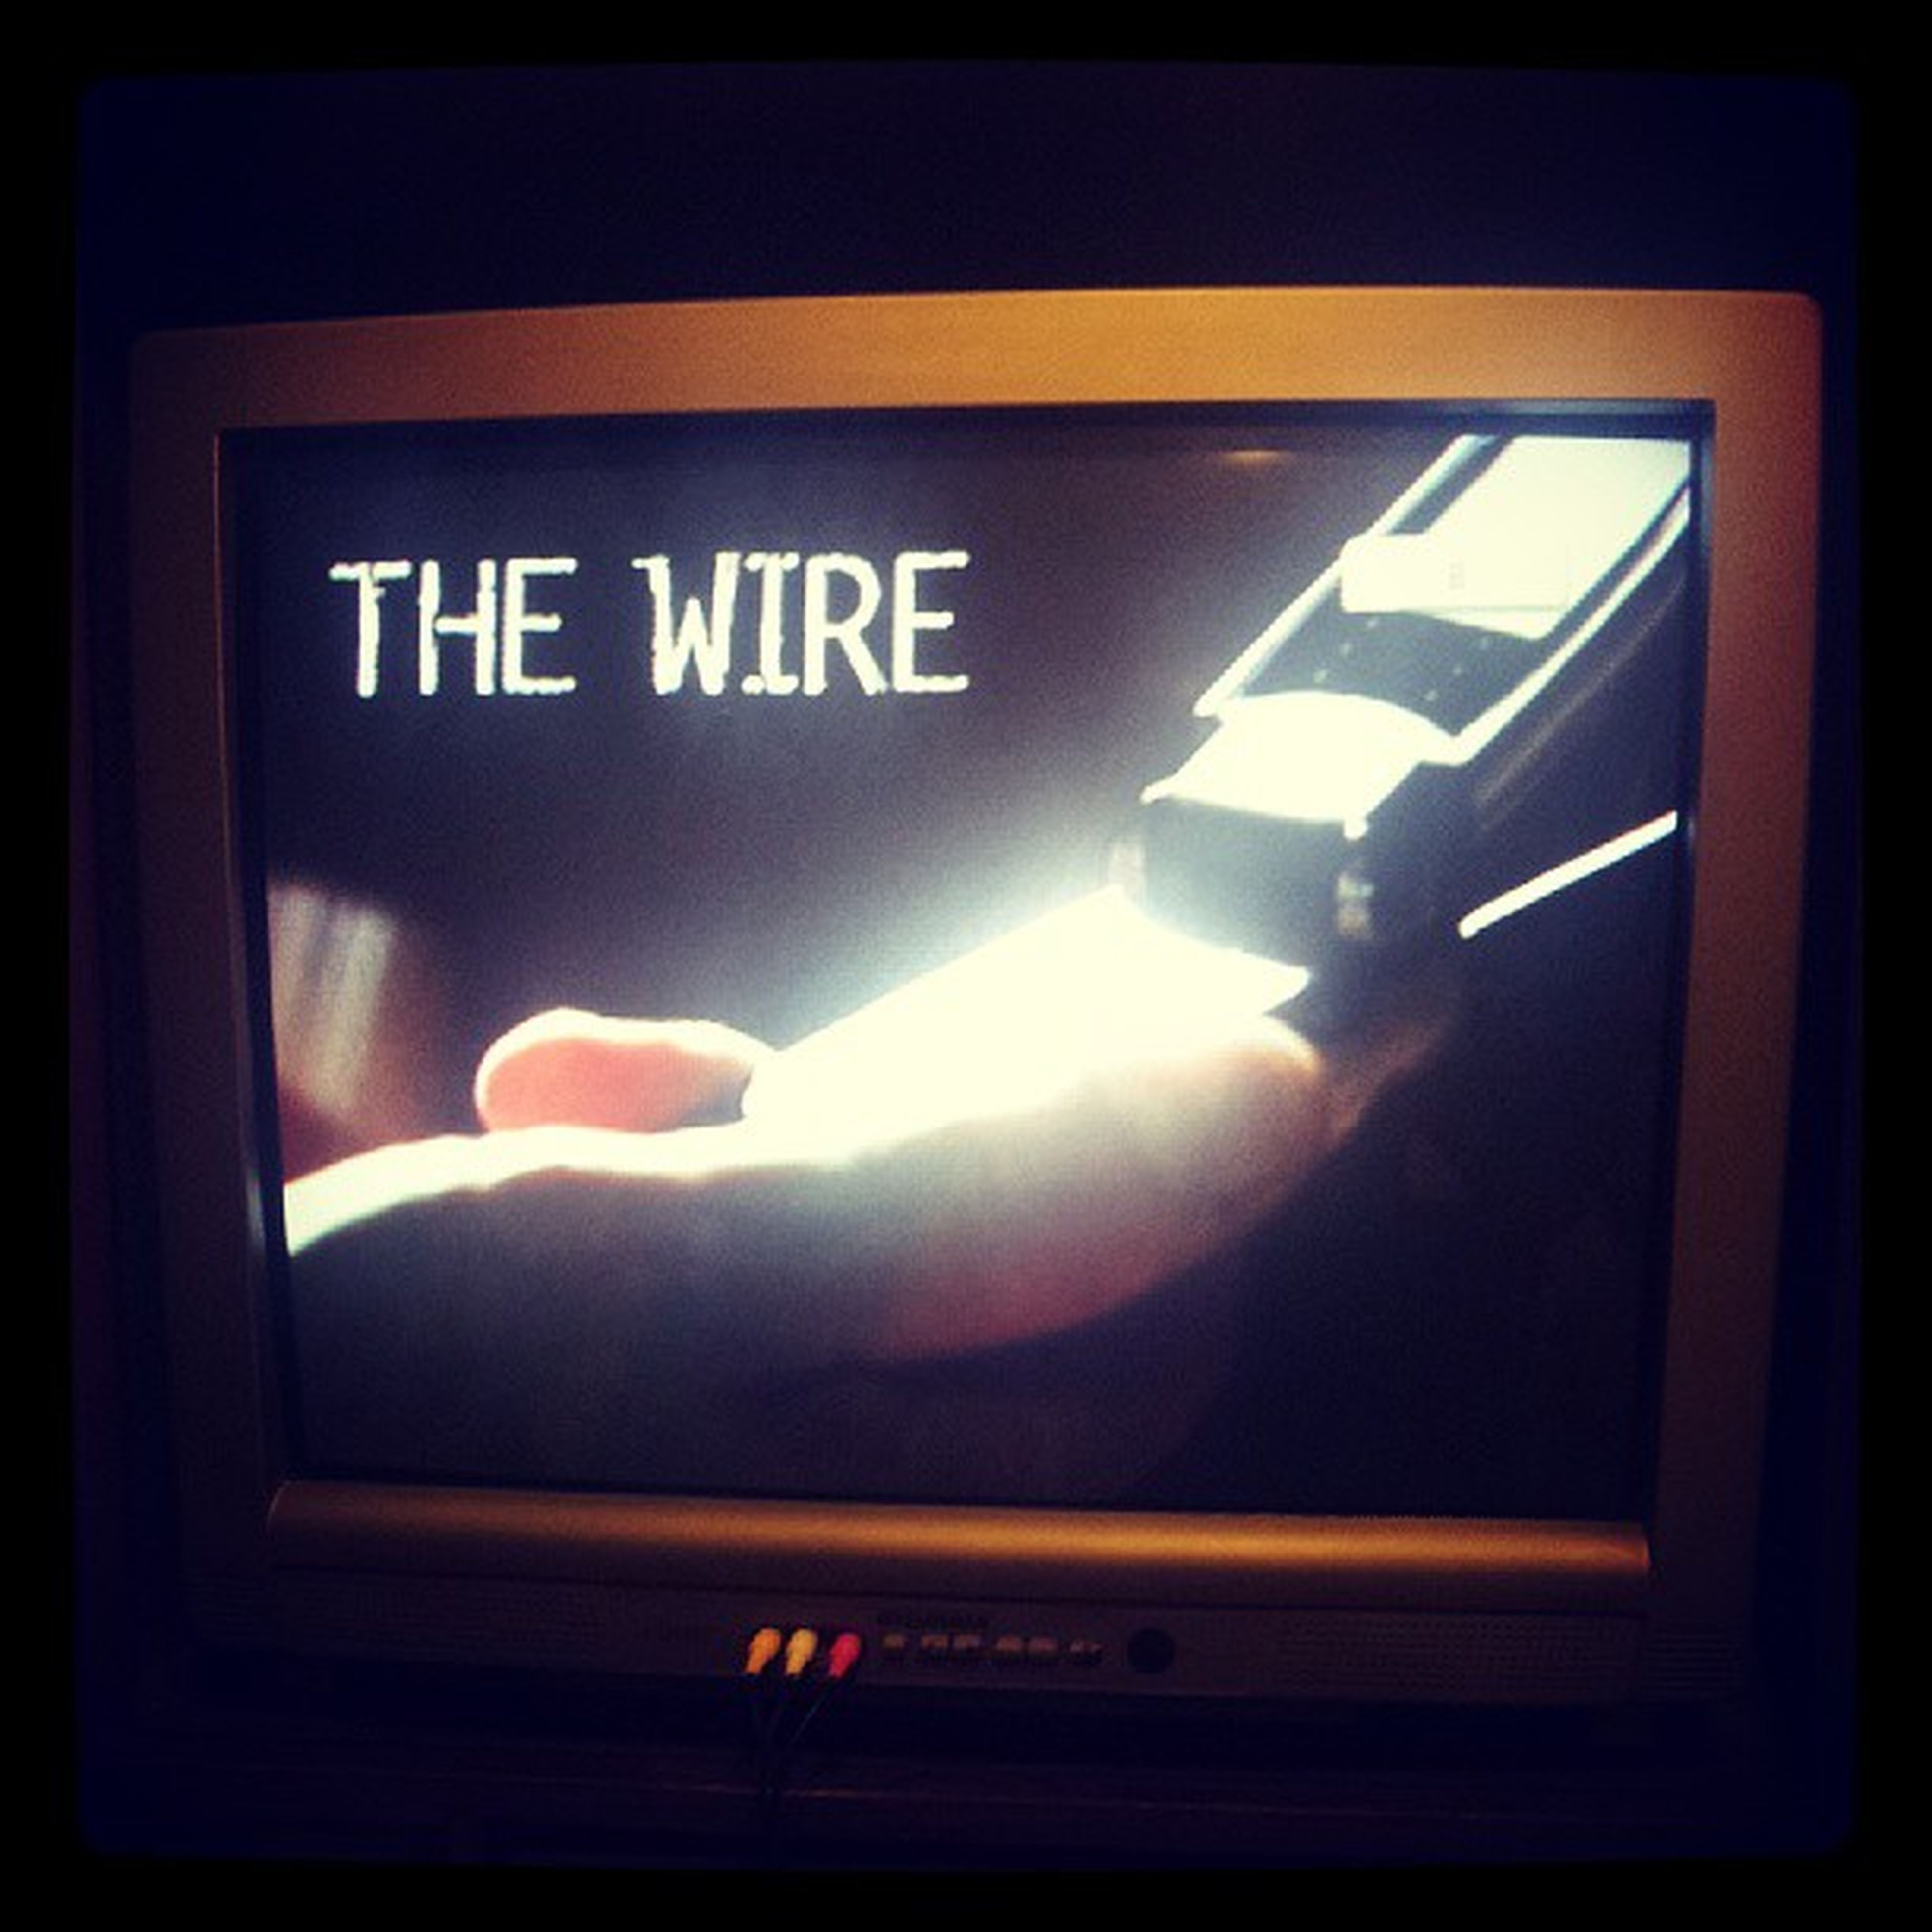 On it once again ... if you ain't seen it, you missing out. Thewire TheGreatestShow